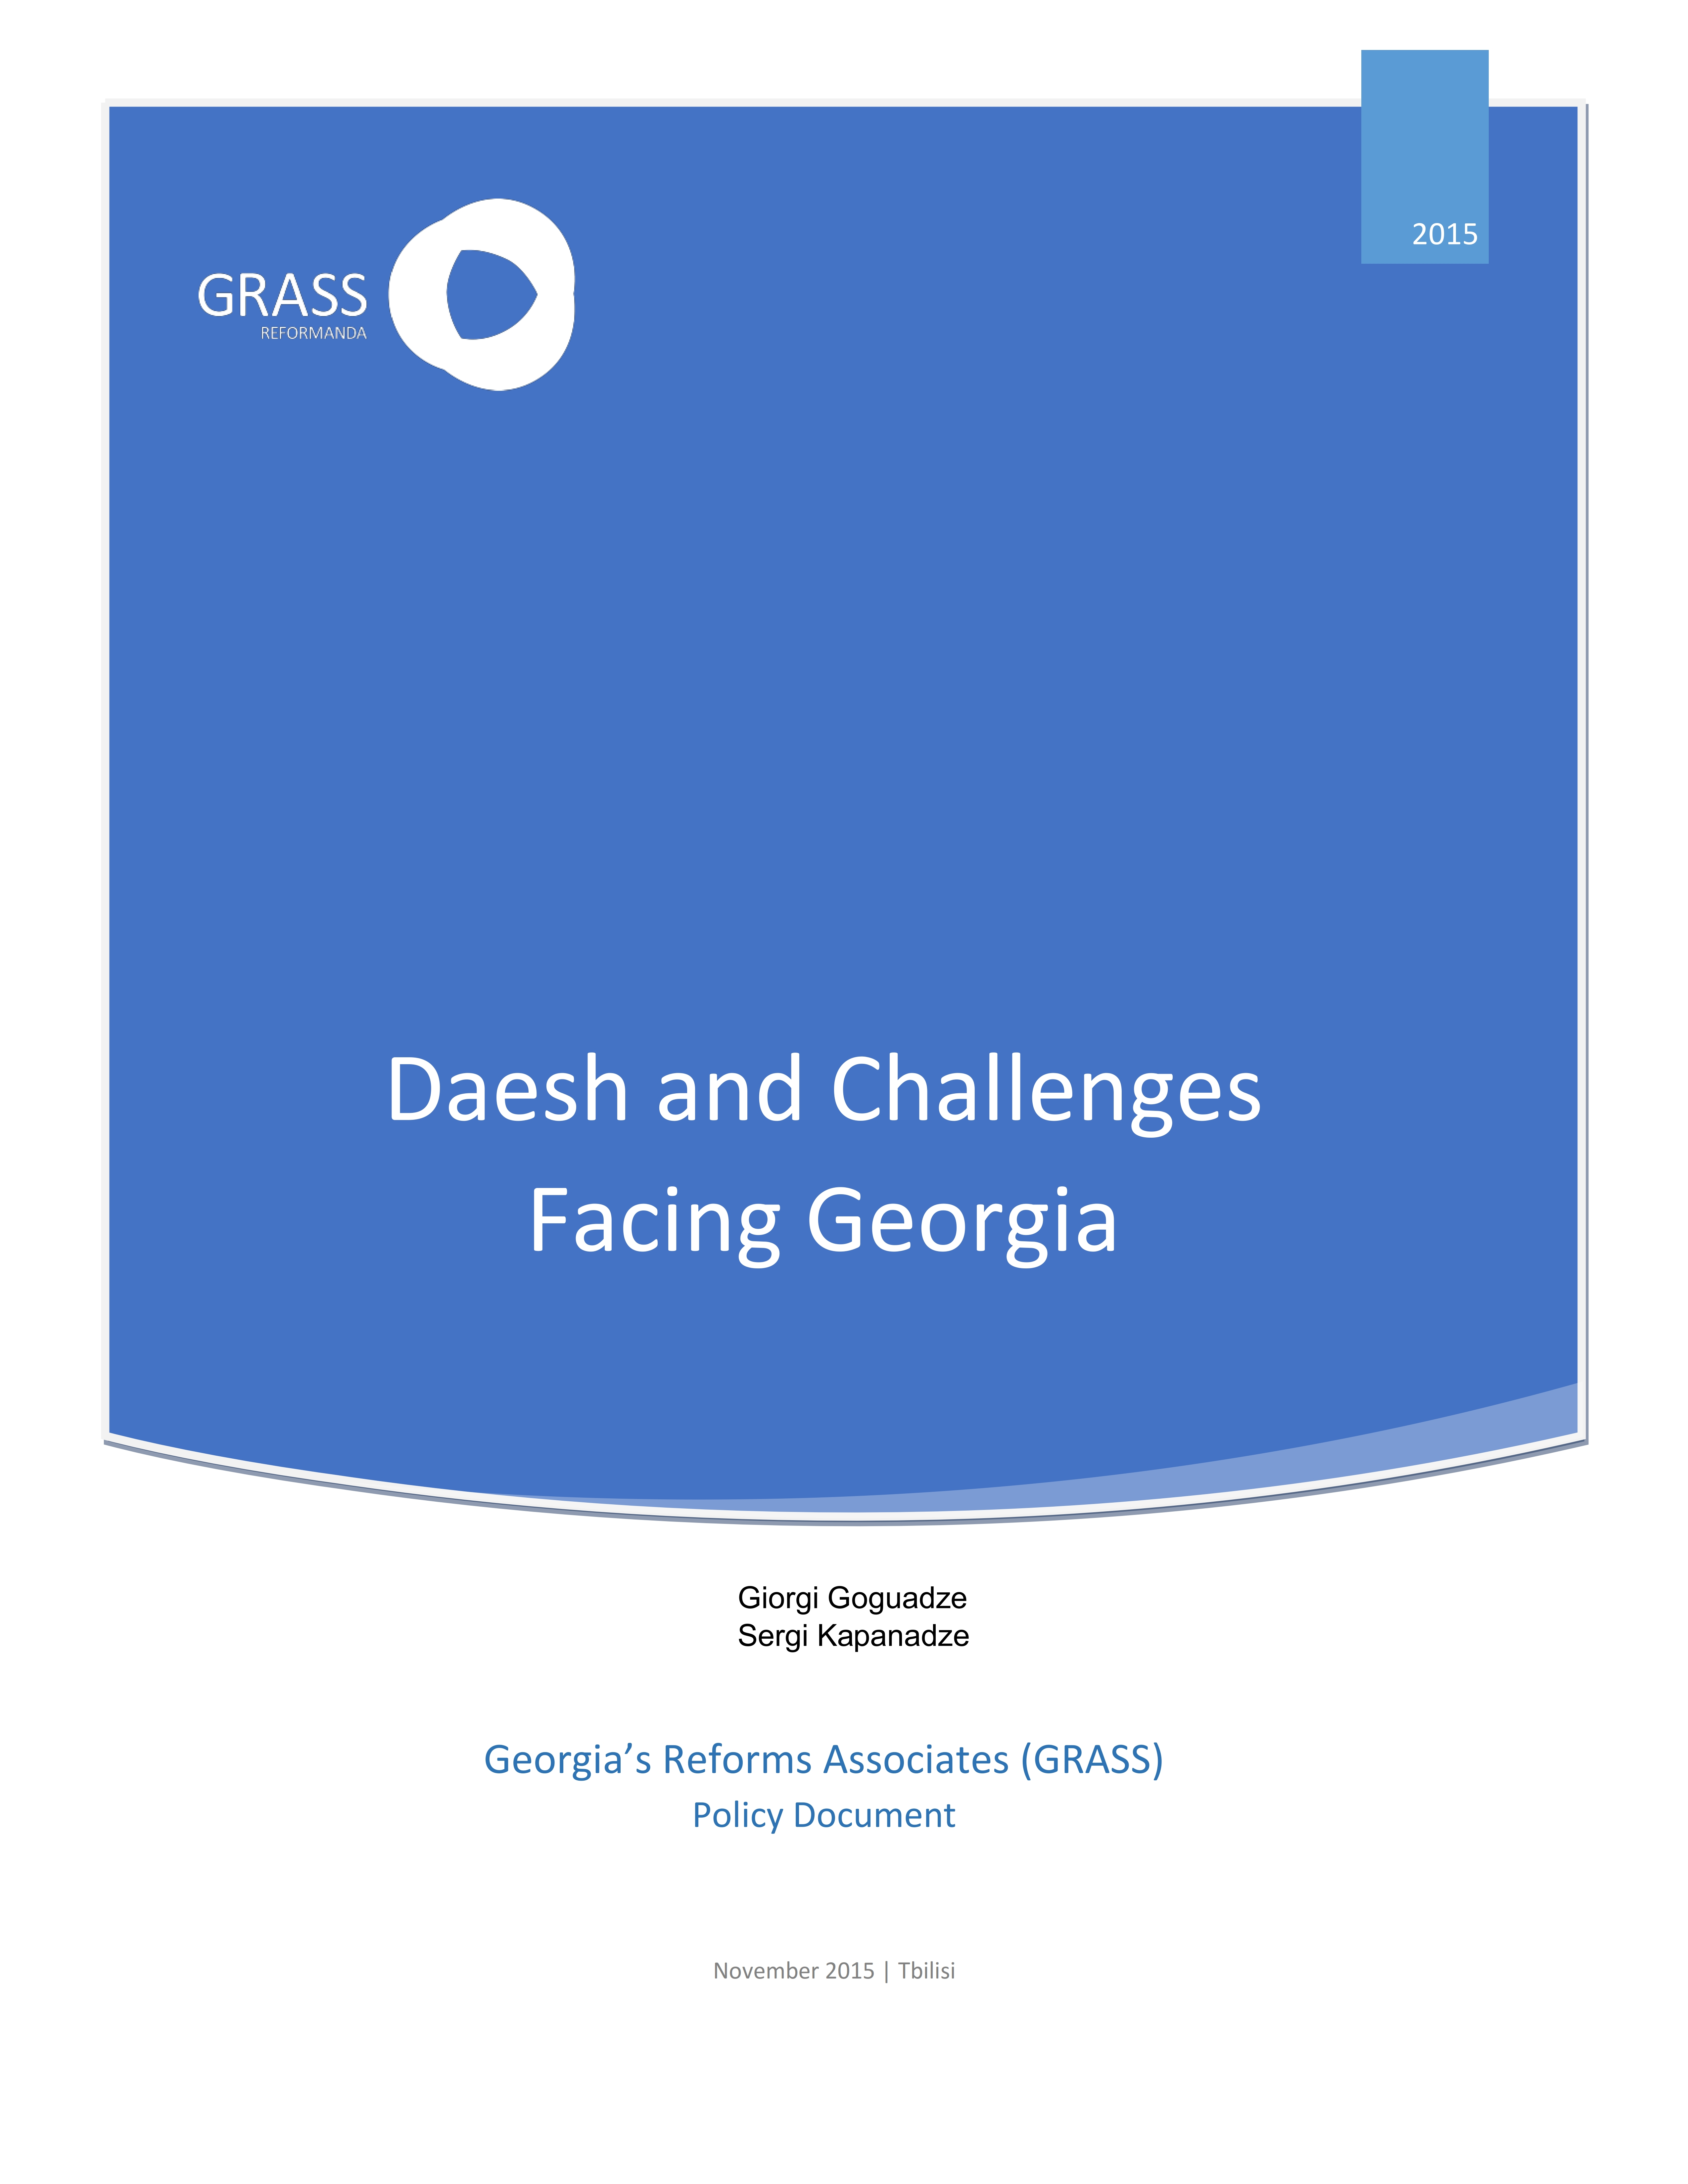 https://grass.org.ge/wp-content/uploads/2015/11/Daesh-and-Challenges-Facing-Georgia_001.jpg